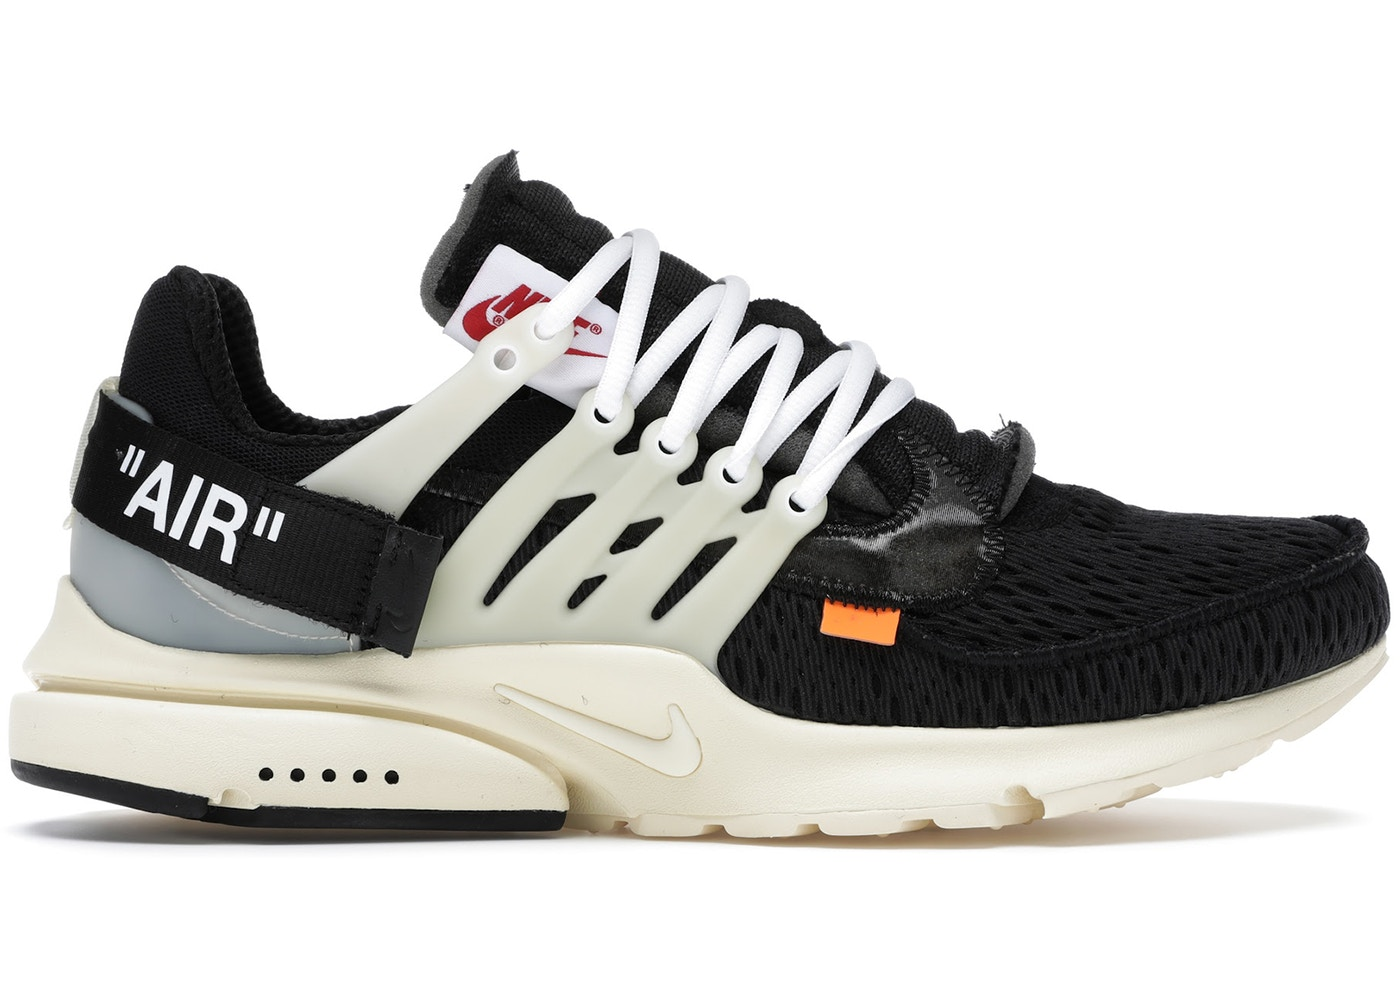 reputable site 94fe6 4a76e Air Presto Off-White - AA3830-001